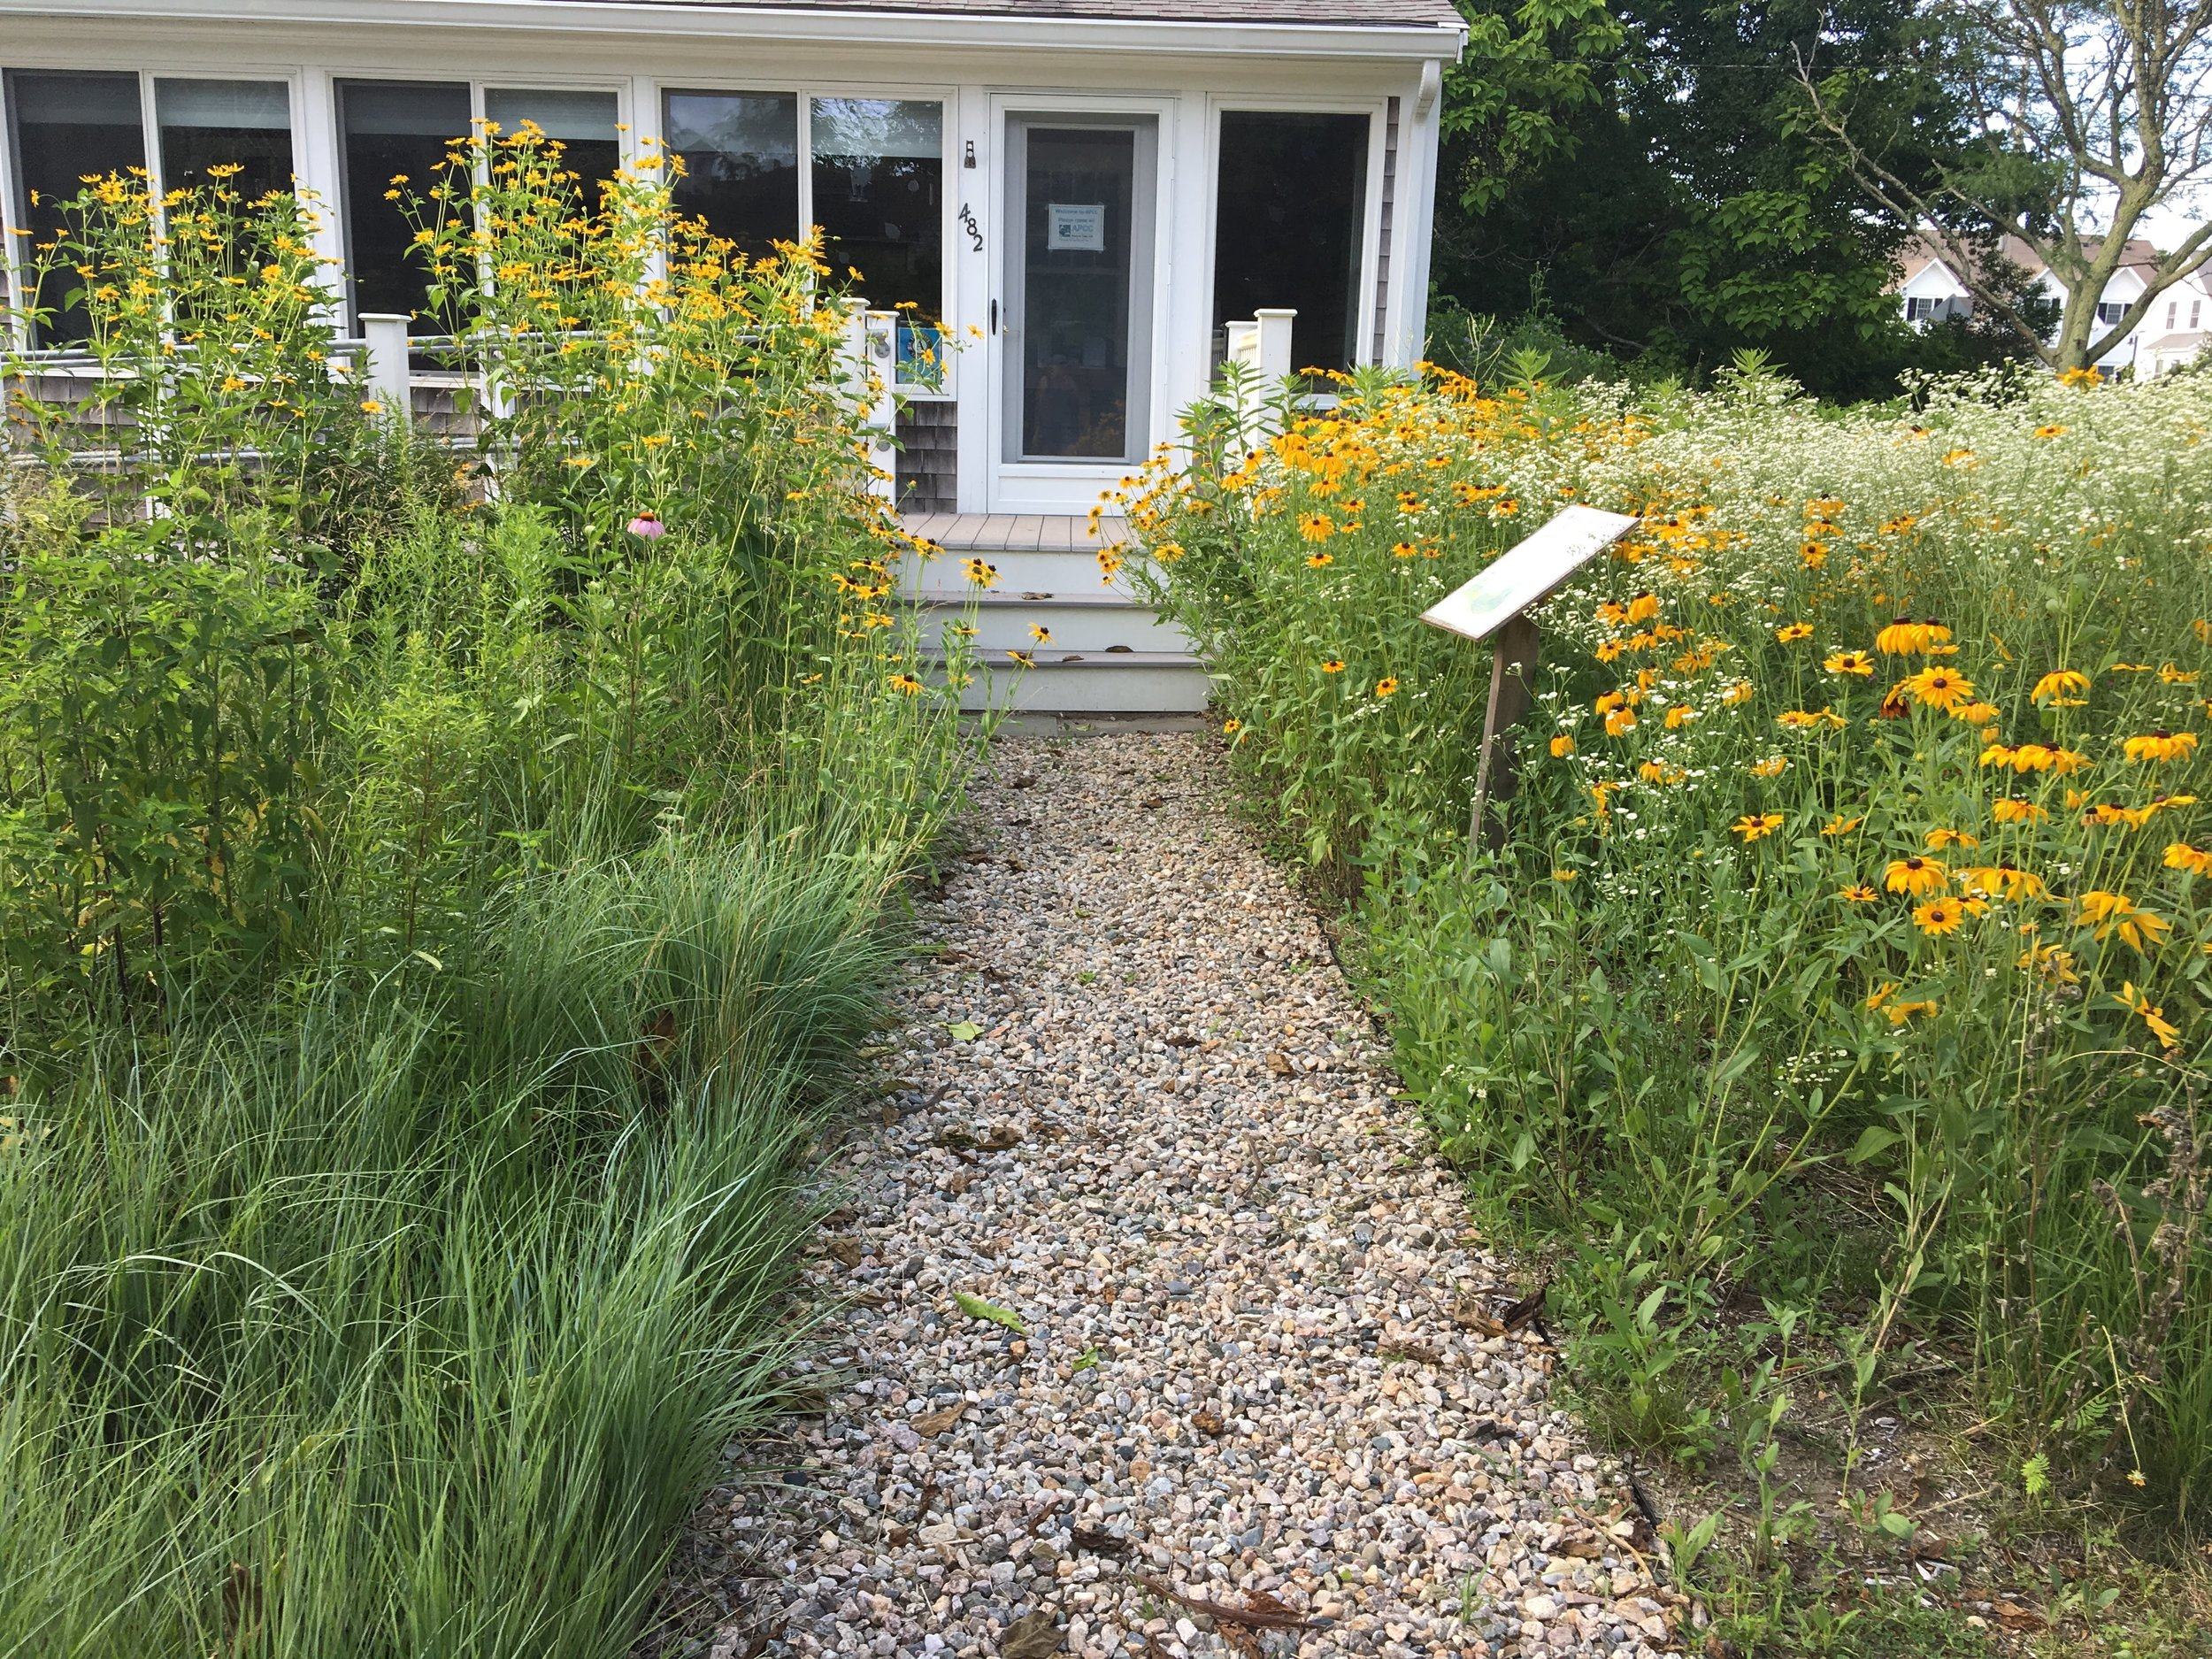 DURING: View of meadow garden at front entrance to APCC Headquarters